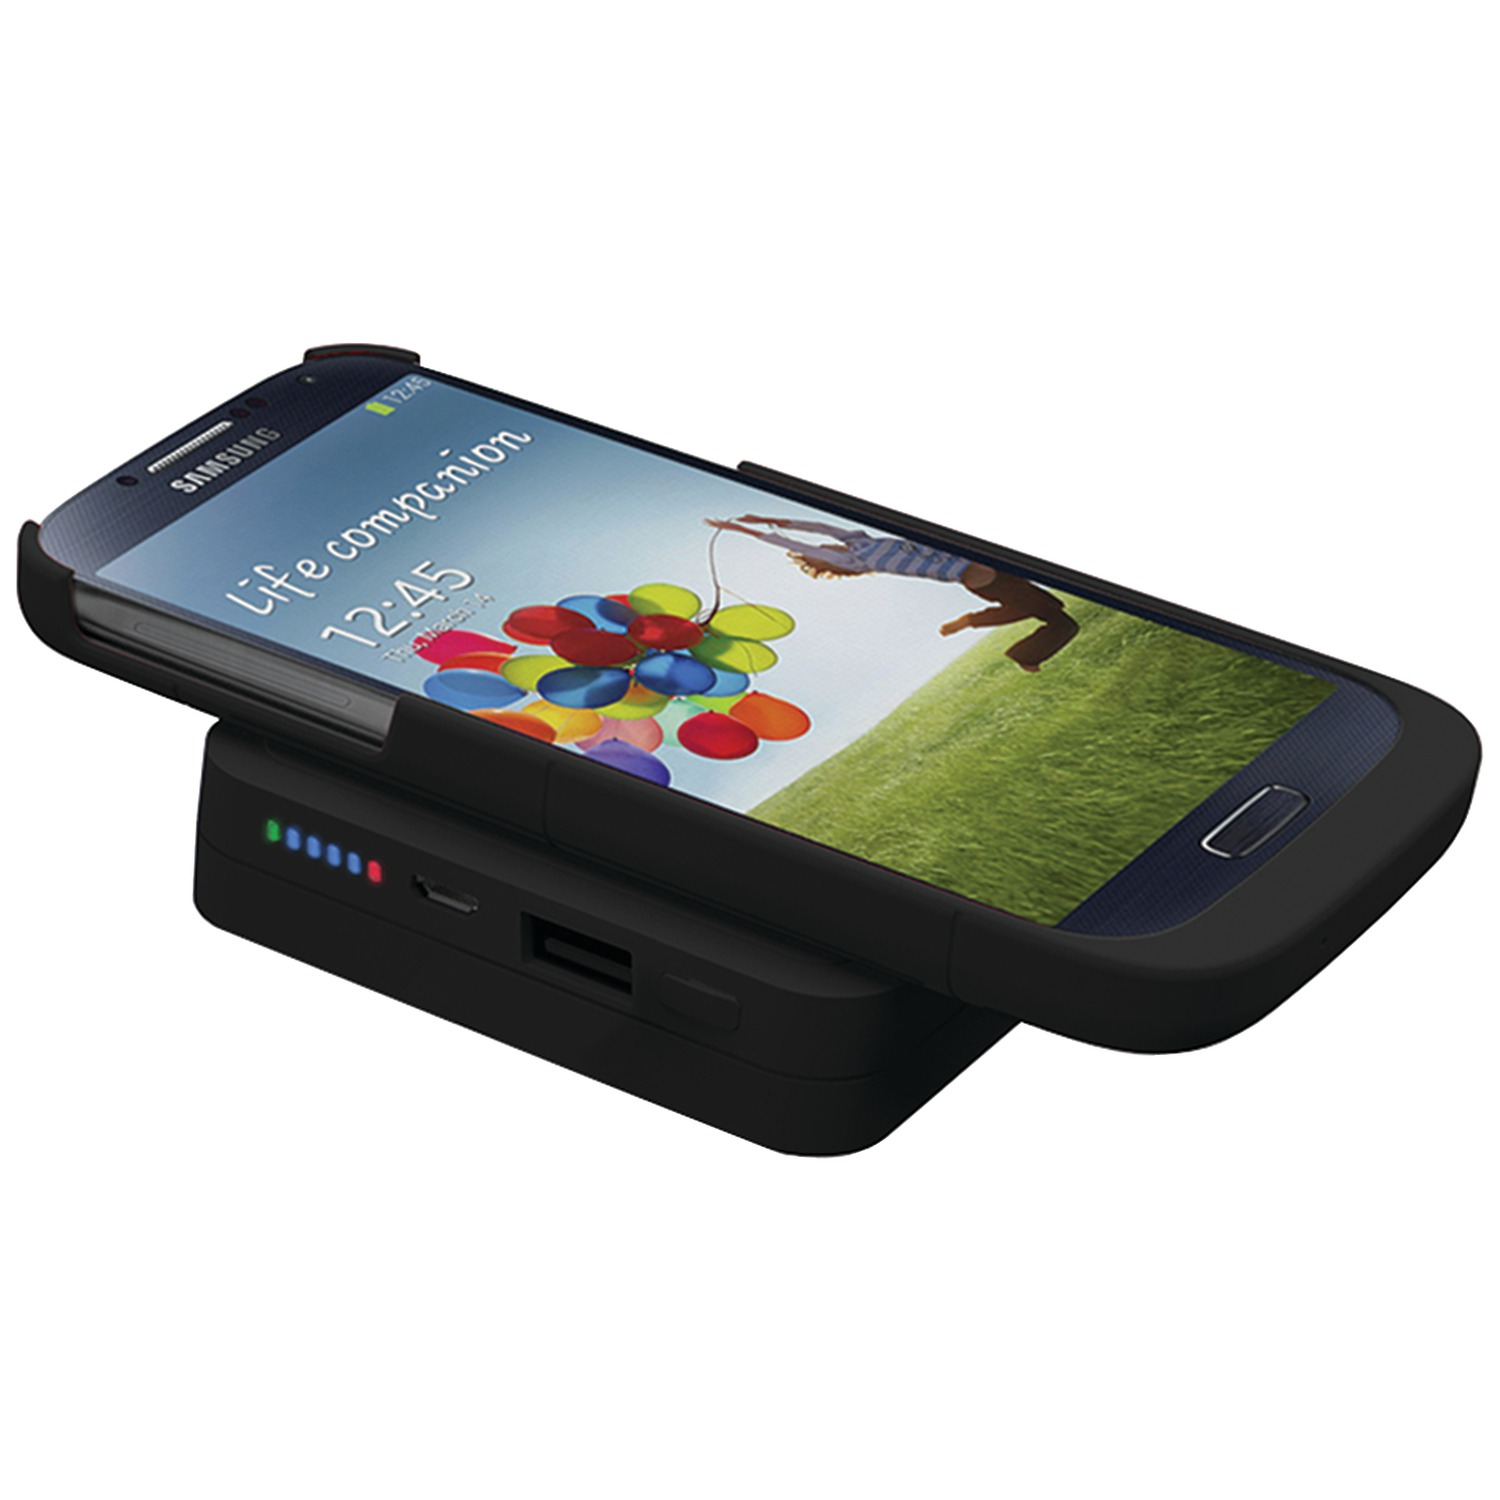 TRIDENT CASE BD-QIPB6K-BKGS4 Samsung Galaxy S 4 Electra Qi Power Base 6000 Bundle